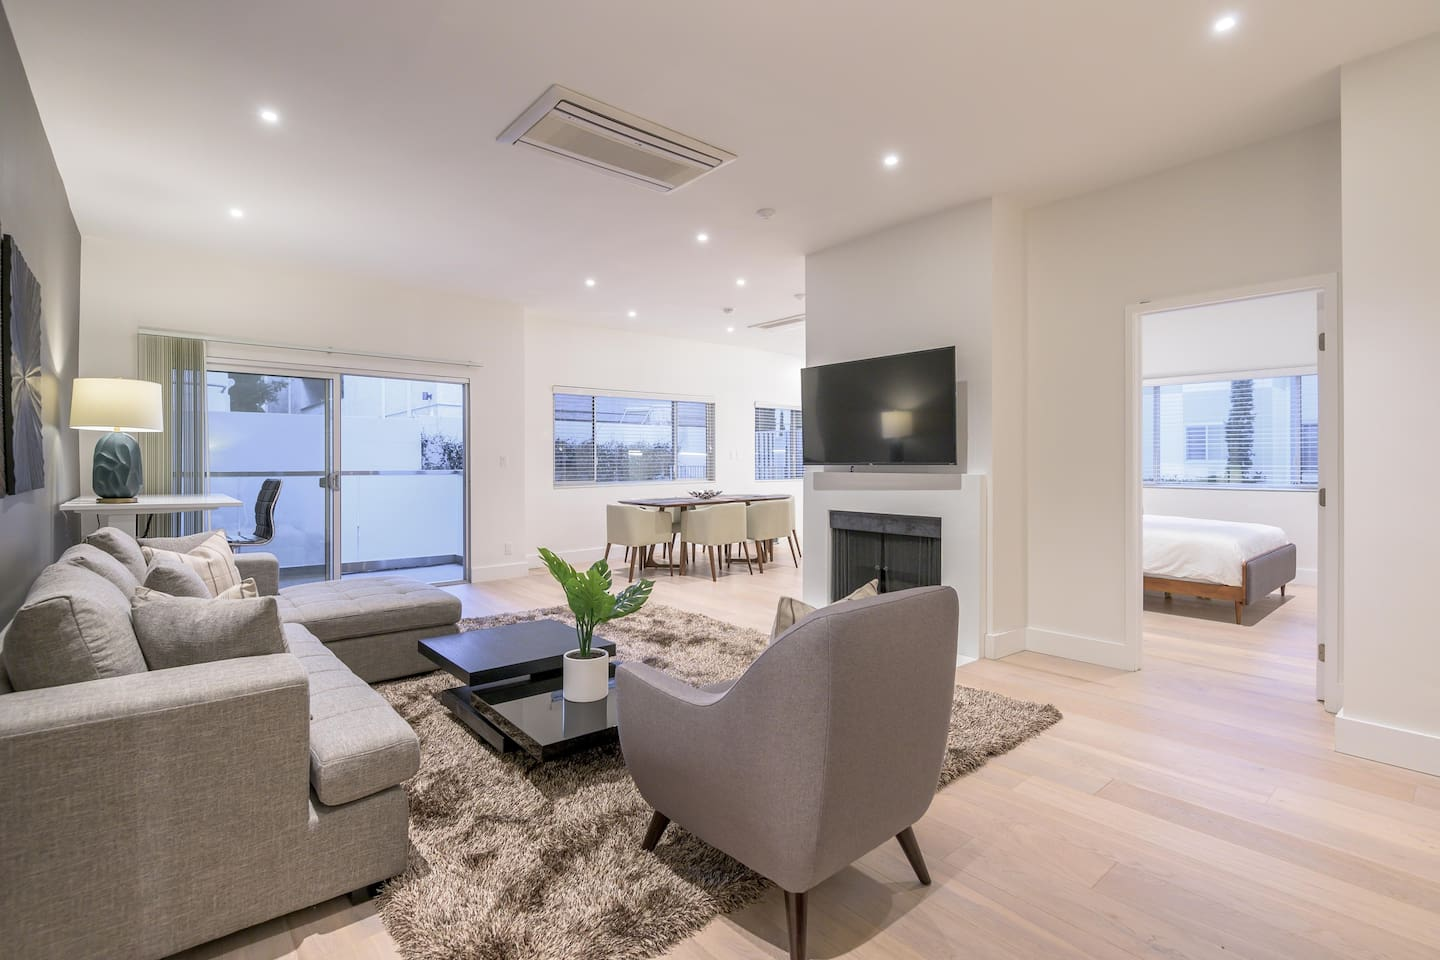 Living Space - Fireplace / TV / Dining Room